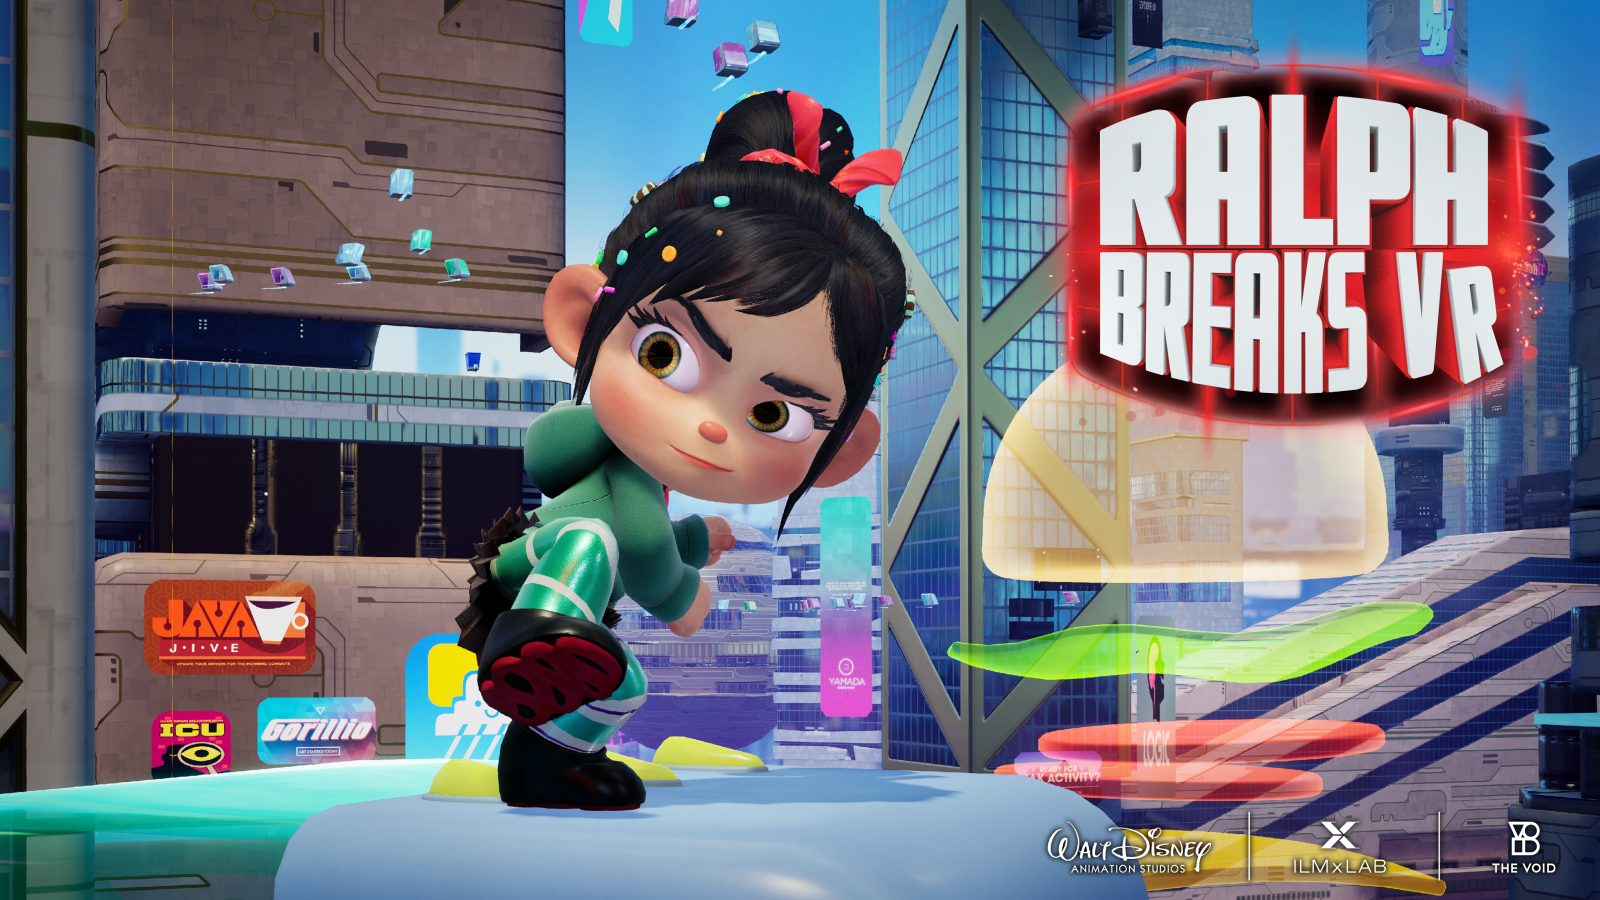 ralph breaks vr photo for the void